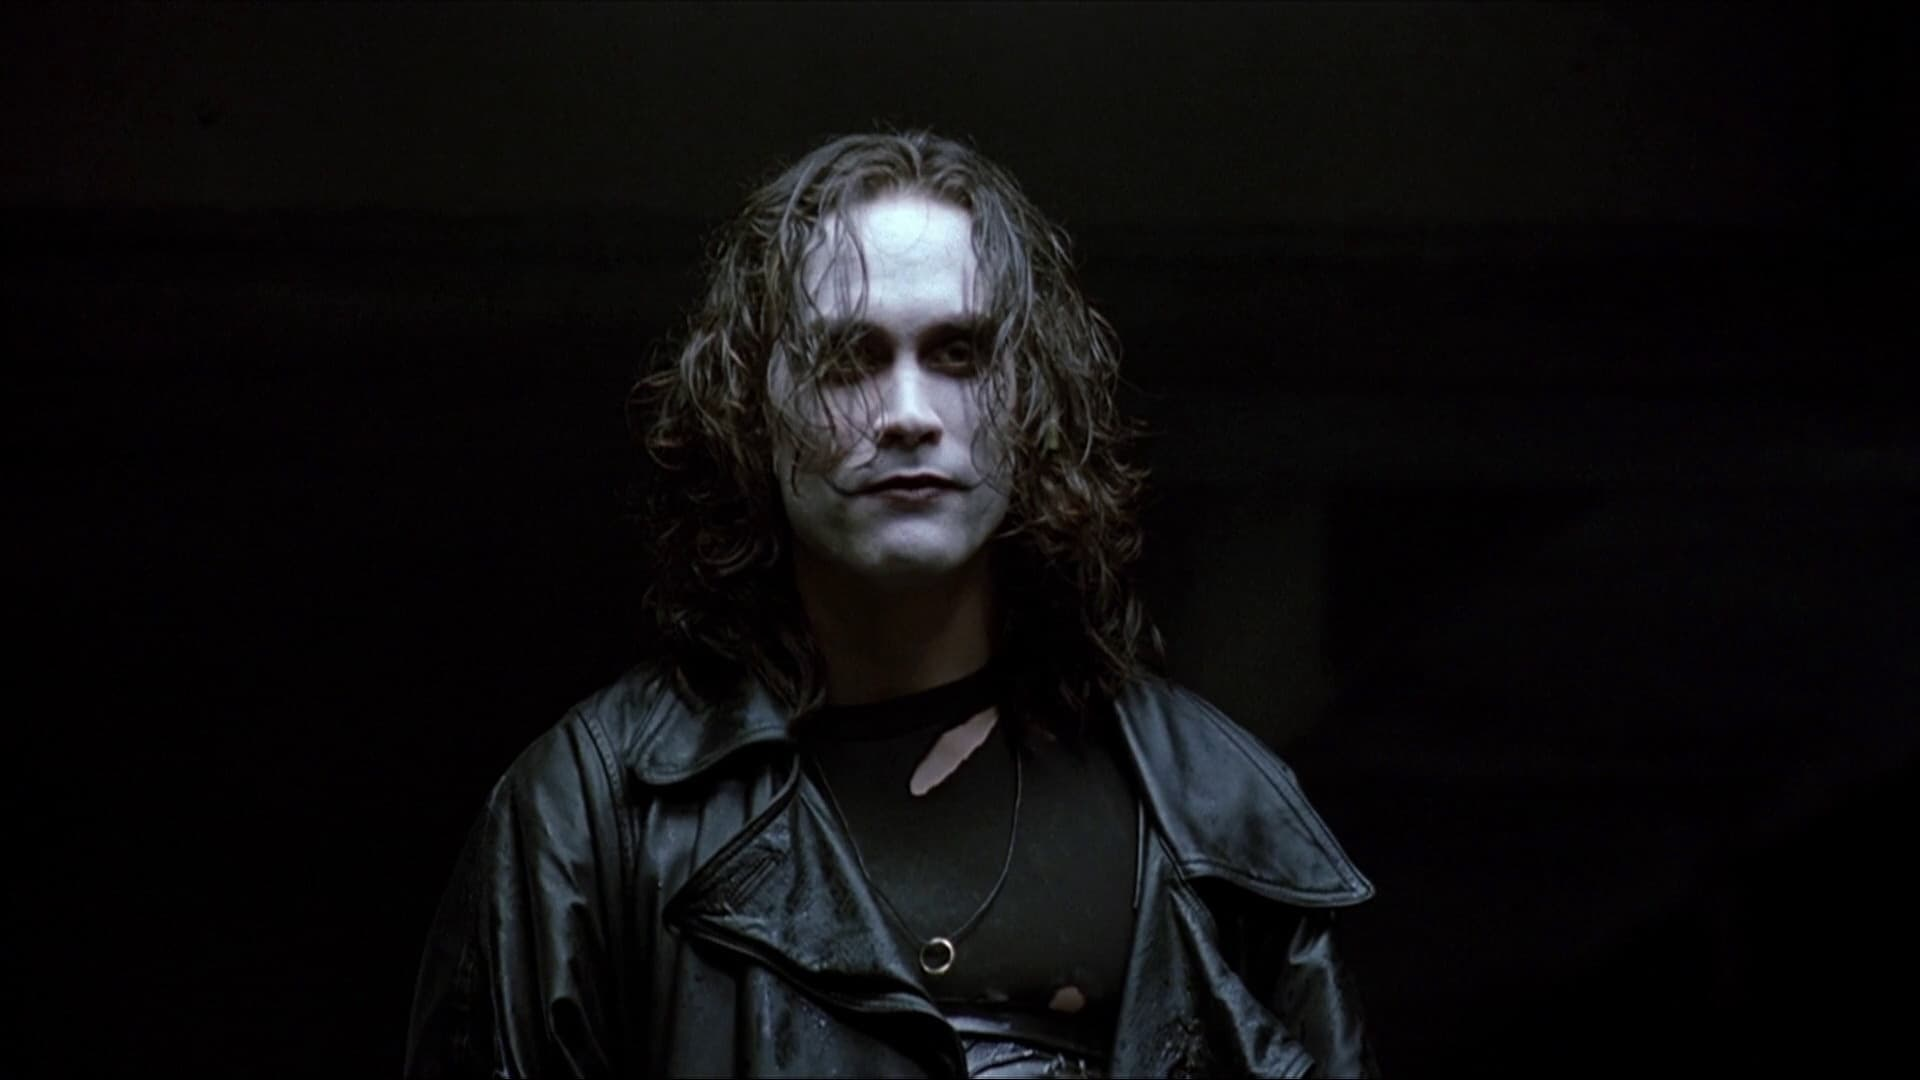 Brandon Lee as Eric Draven in The Crow (1994)